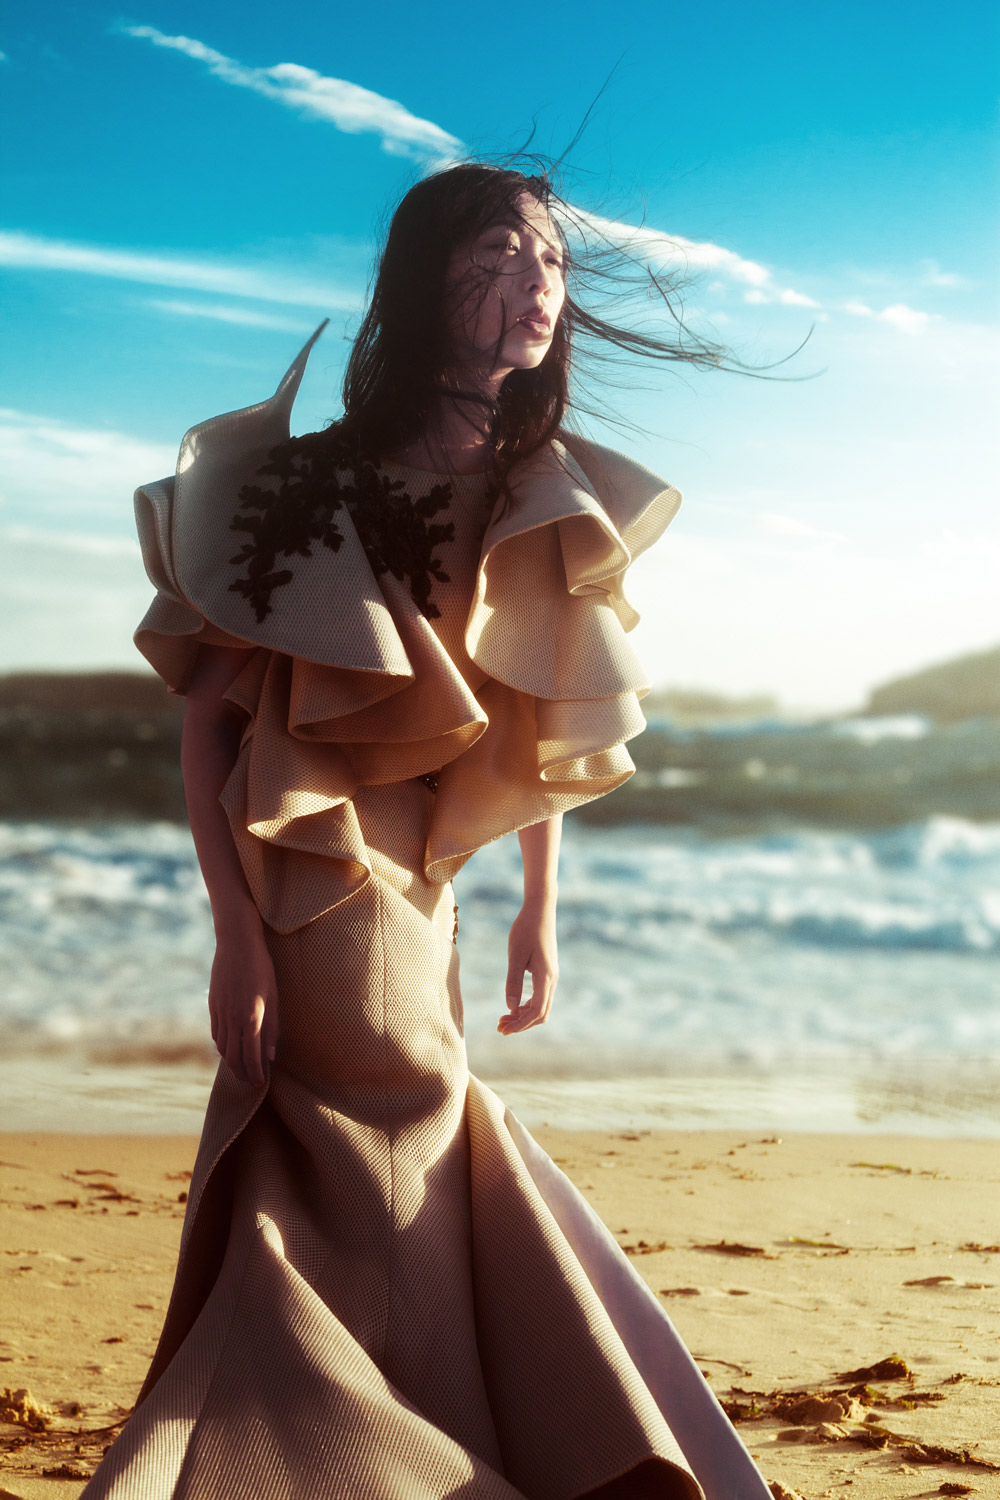 betty tran, fashion shoot, phoshoot, vogue, kay sukumar, cissy zhang